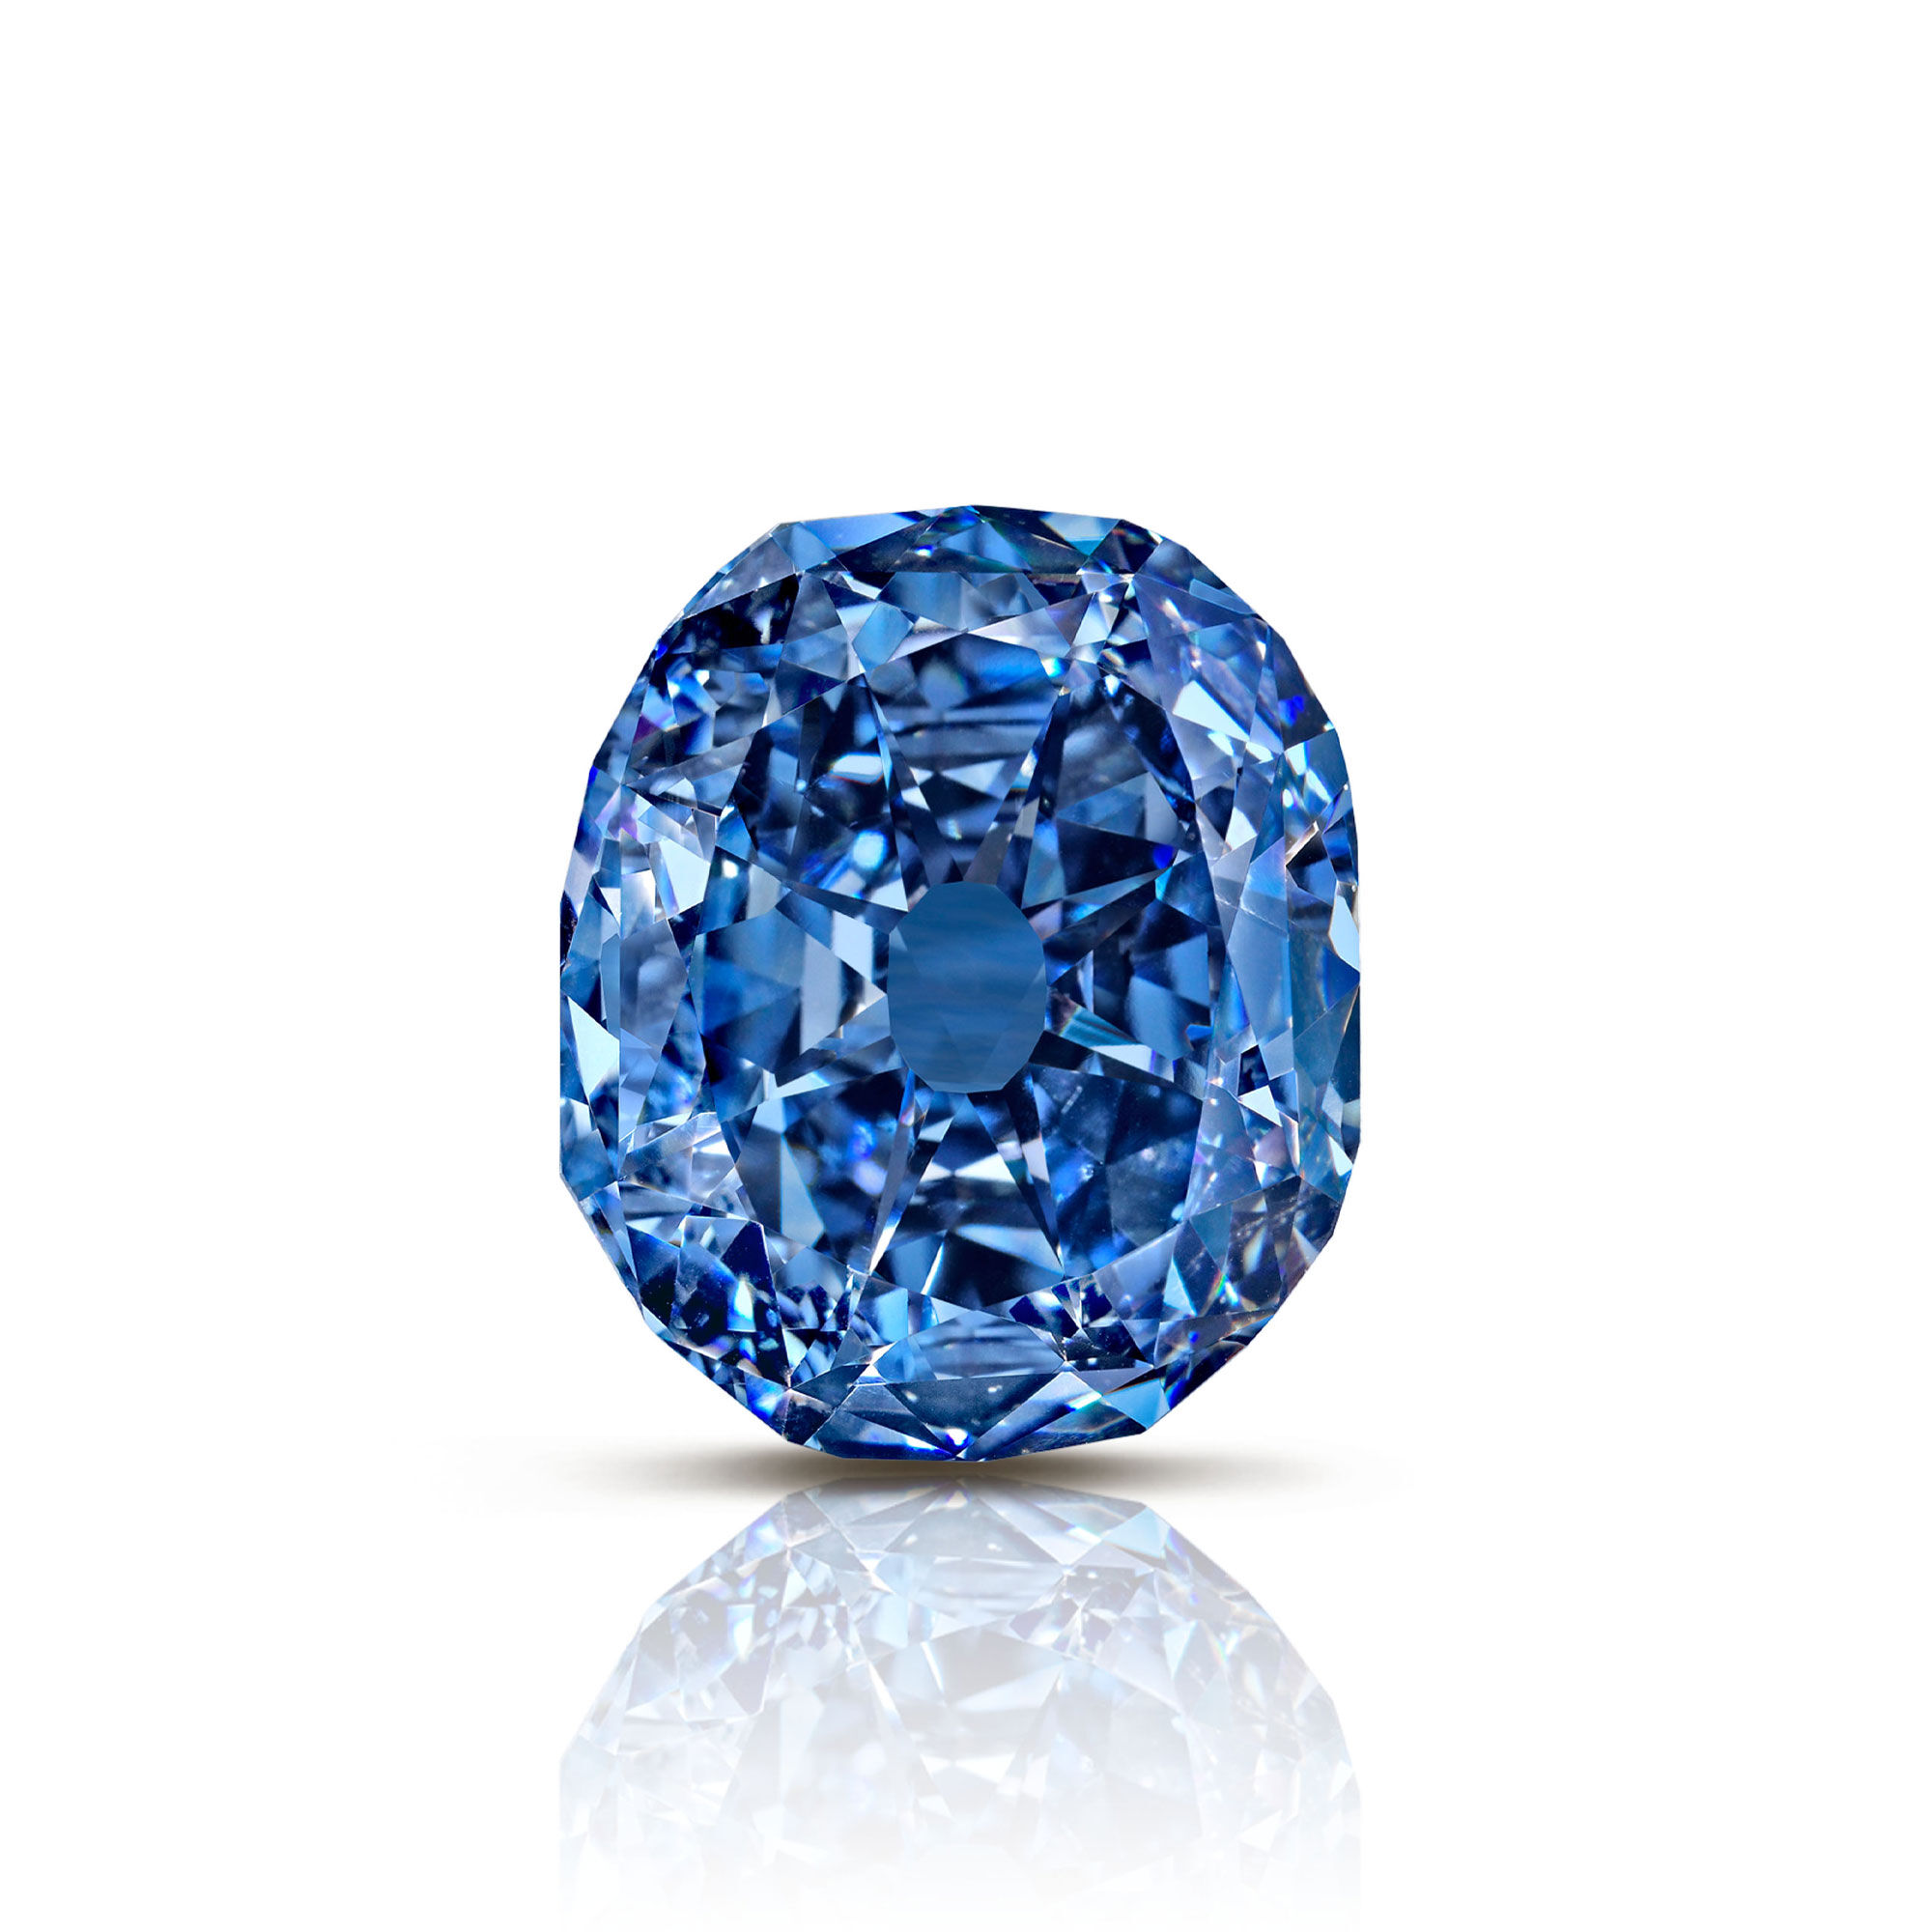 The Wittlesbach-Graff blue diamond